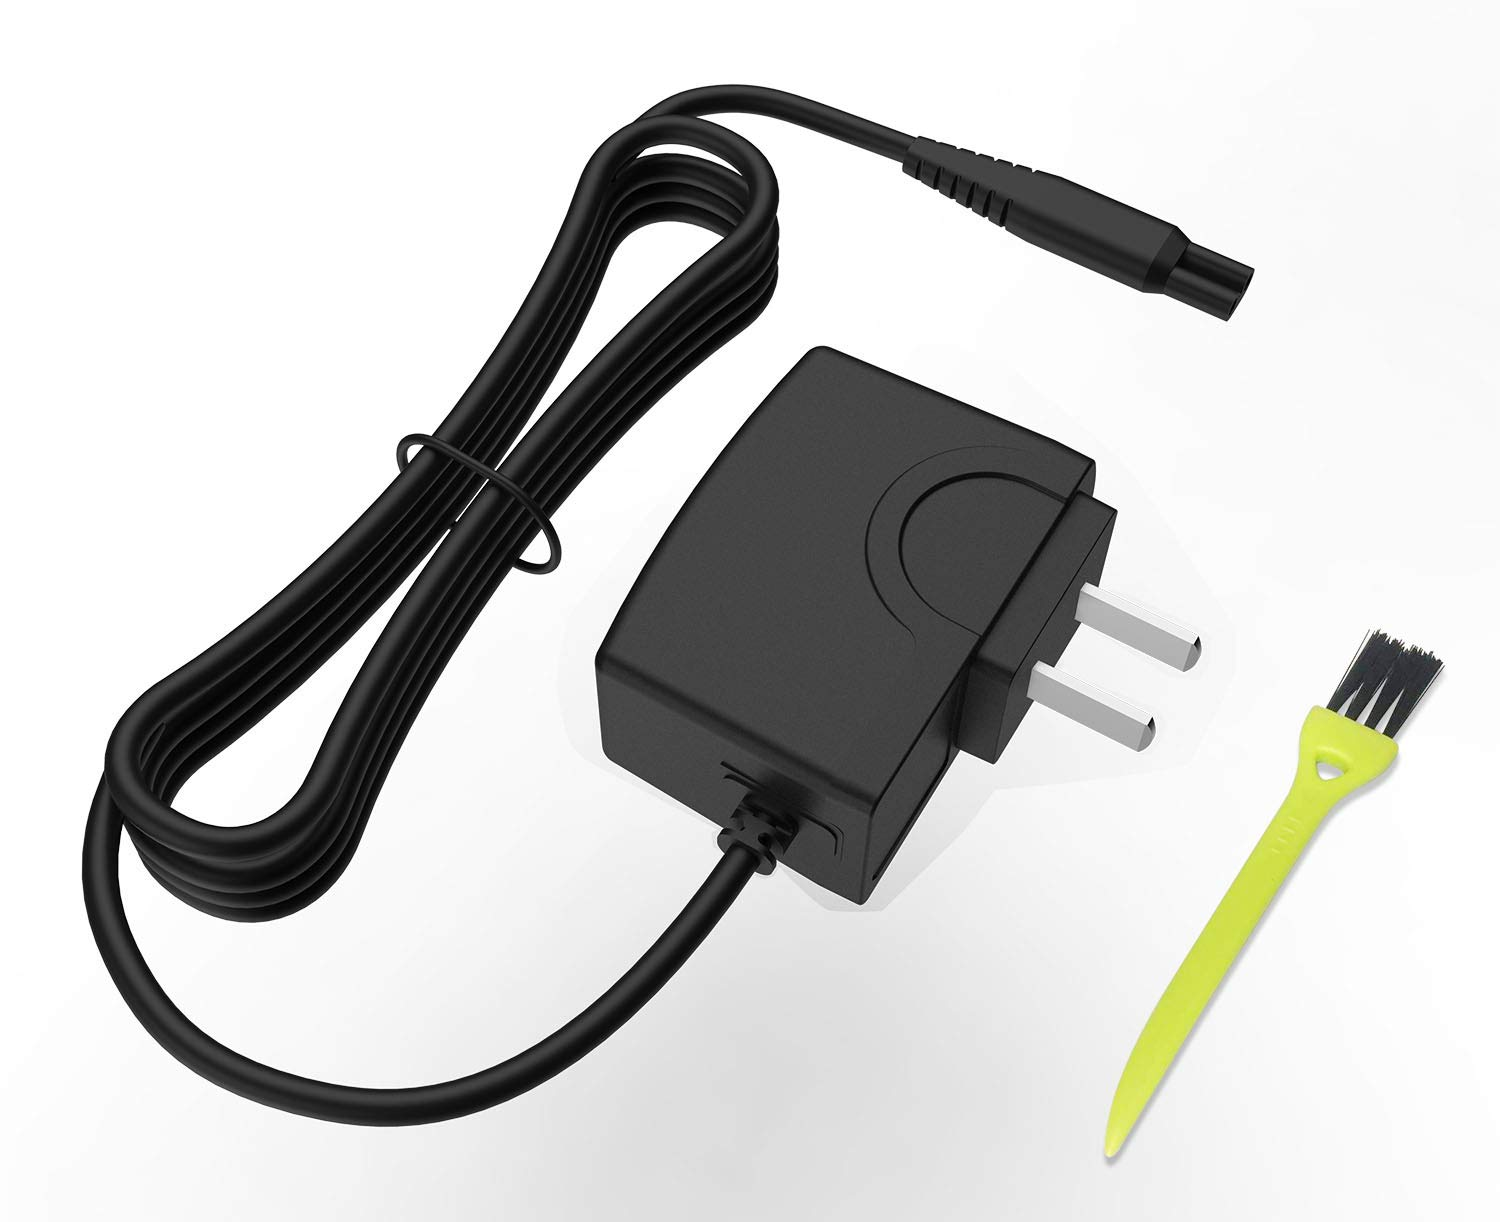 15V Shaver AC Free Shipping New Adapter Philips Memphis Mall Philips-Norelc Charger for Norelco